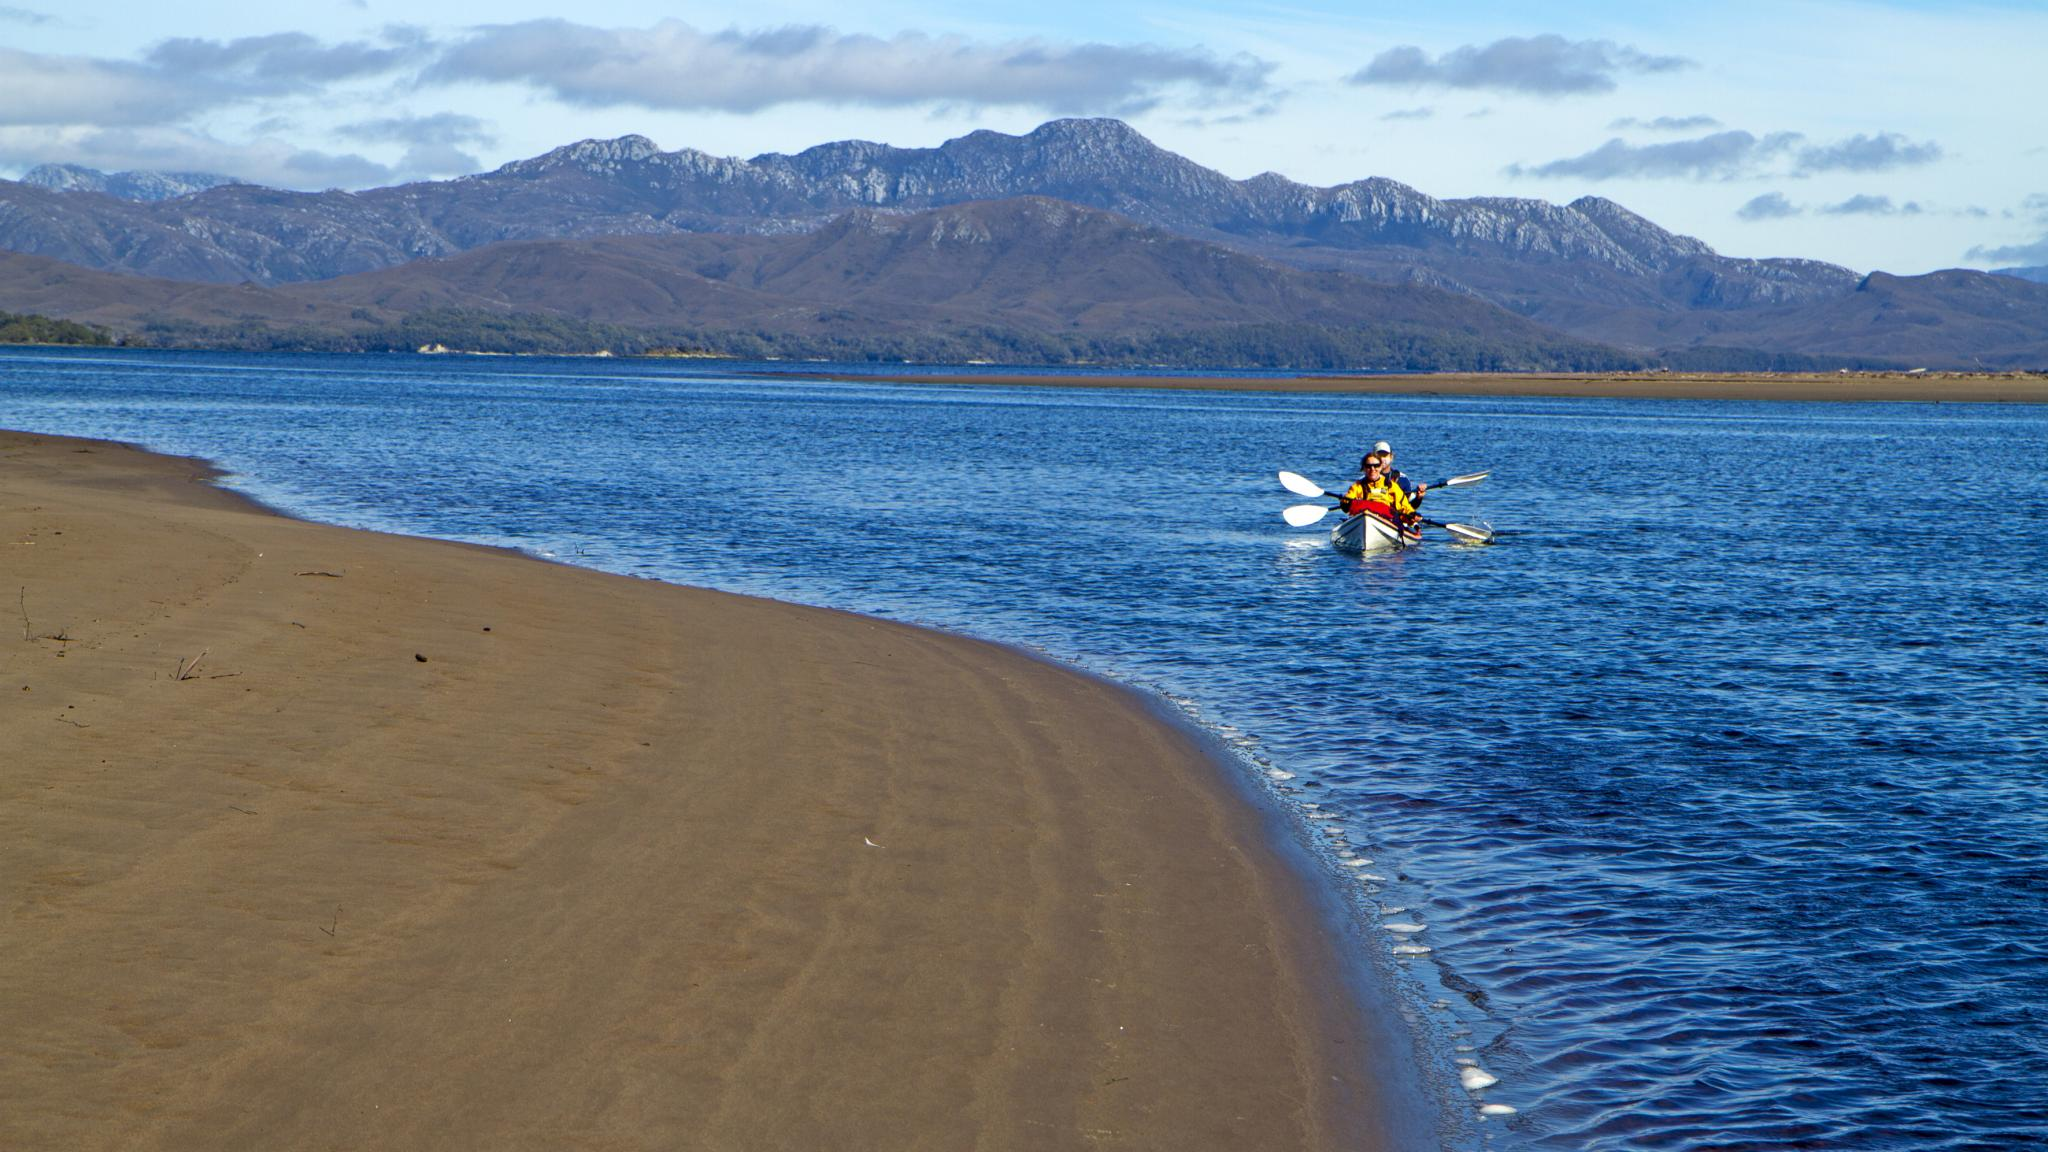 Roaring 40s Kayaking - Tasmania's sea kayaking specialists with day tours and overnight adventures